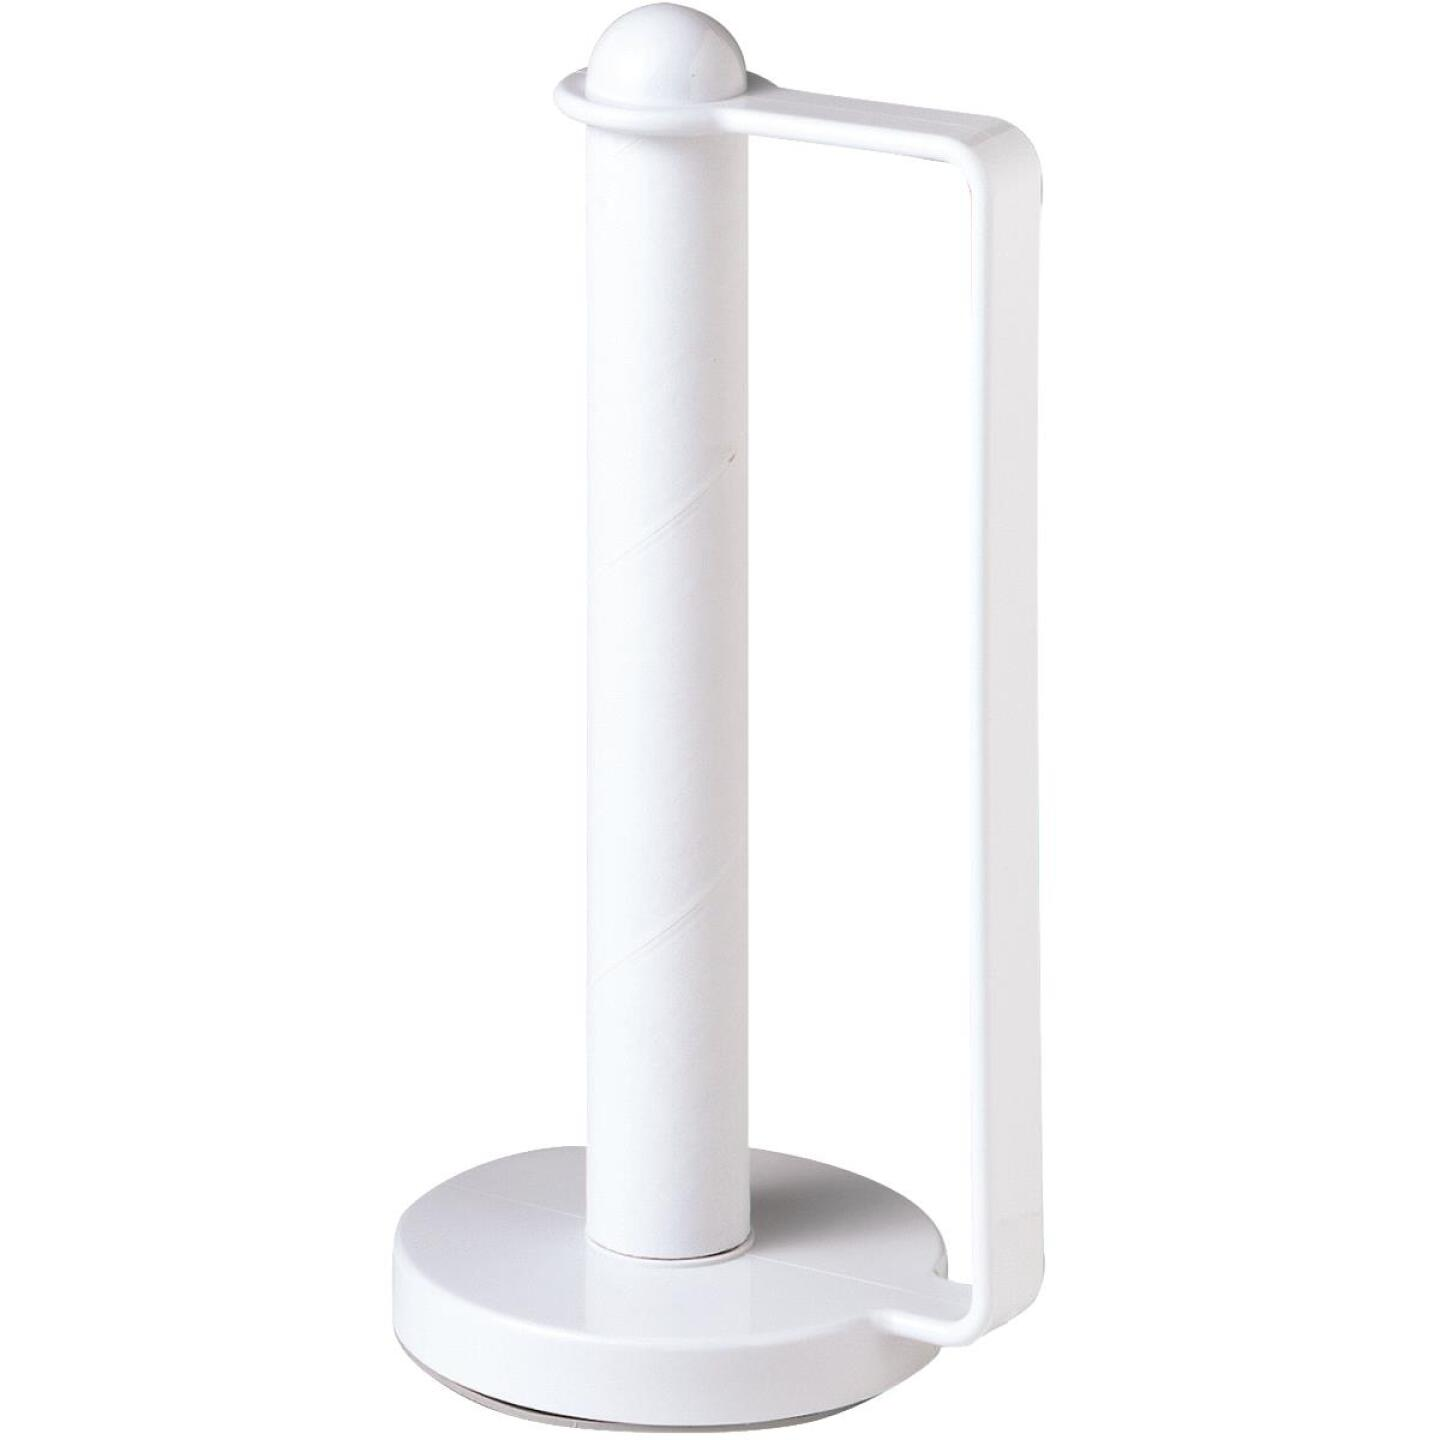 Spectrum White Portable Plastic Paper Towel Holder Image 3